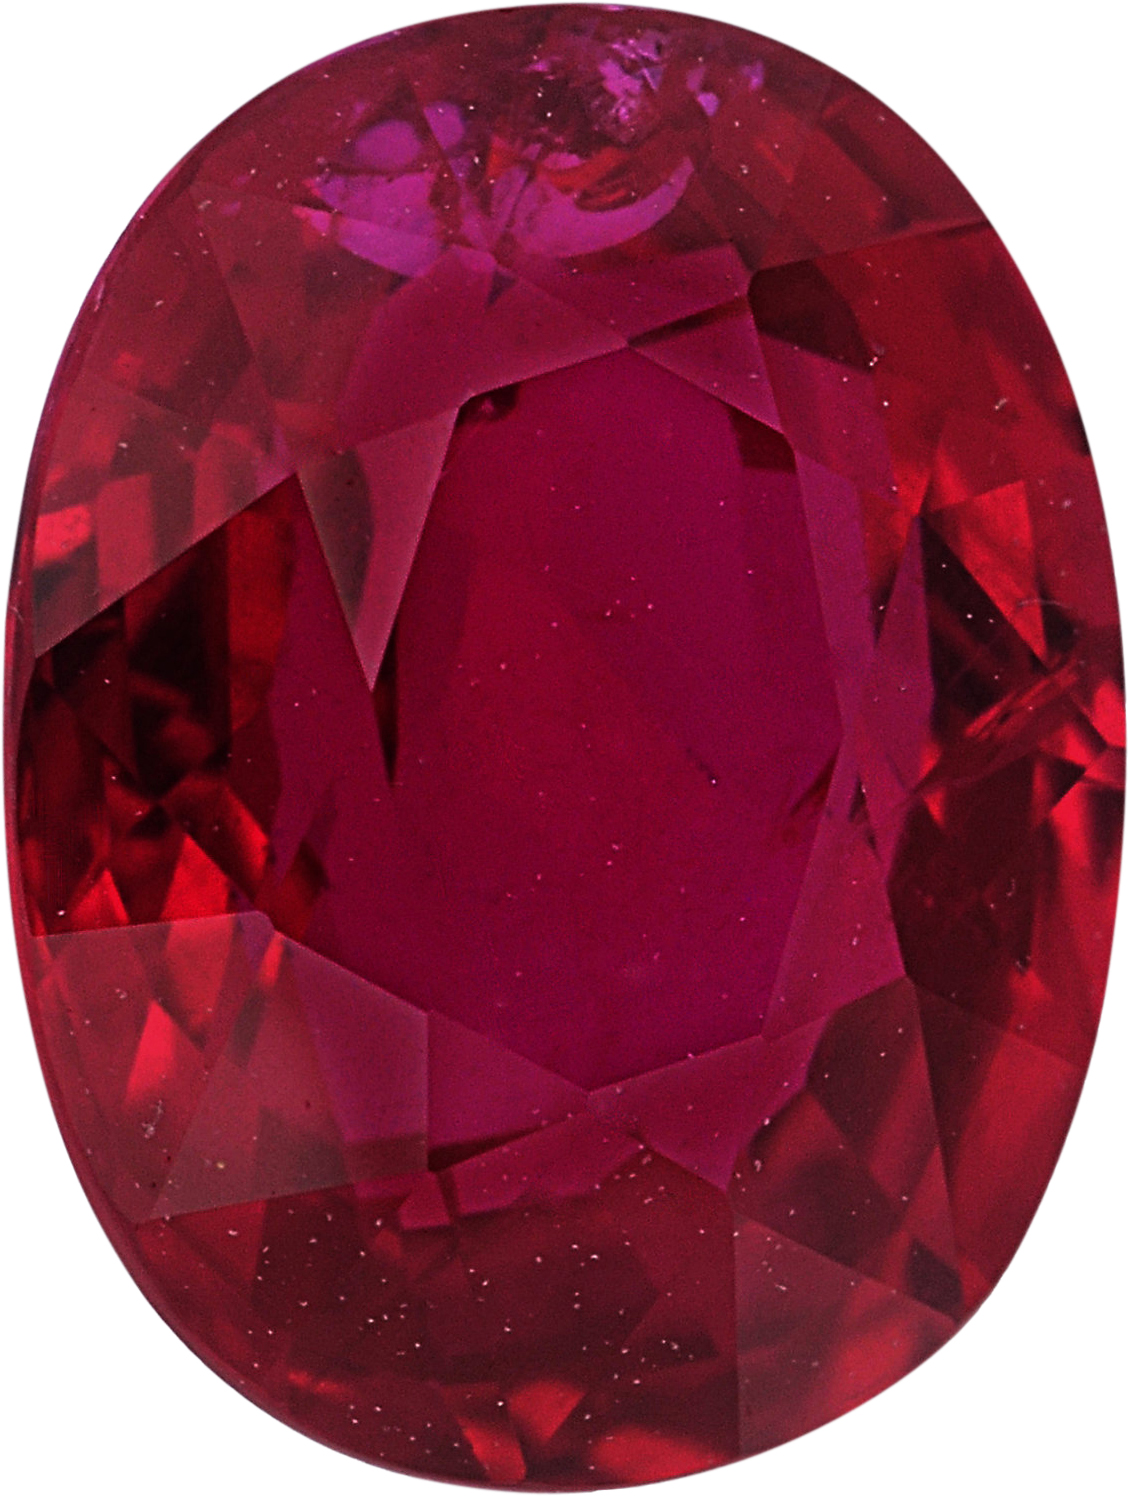 Eye-Catching Oval Cut Loose Ruby Gem, Deep  Red Color, 8.02 x 6.31 mm, 2.02 carats